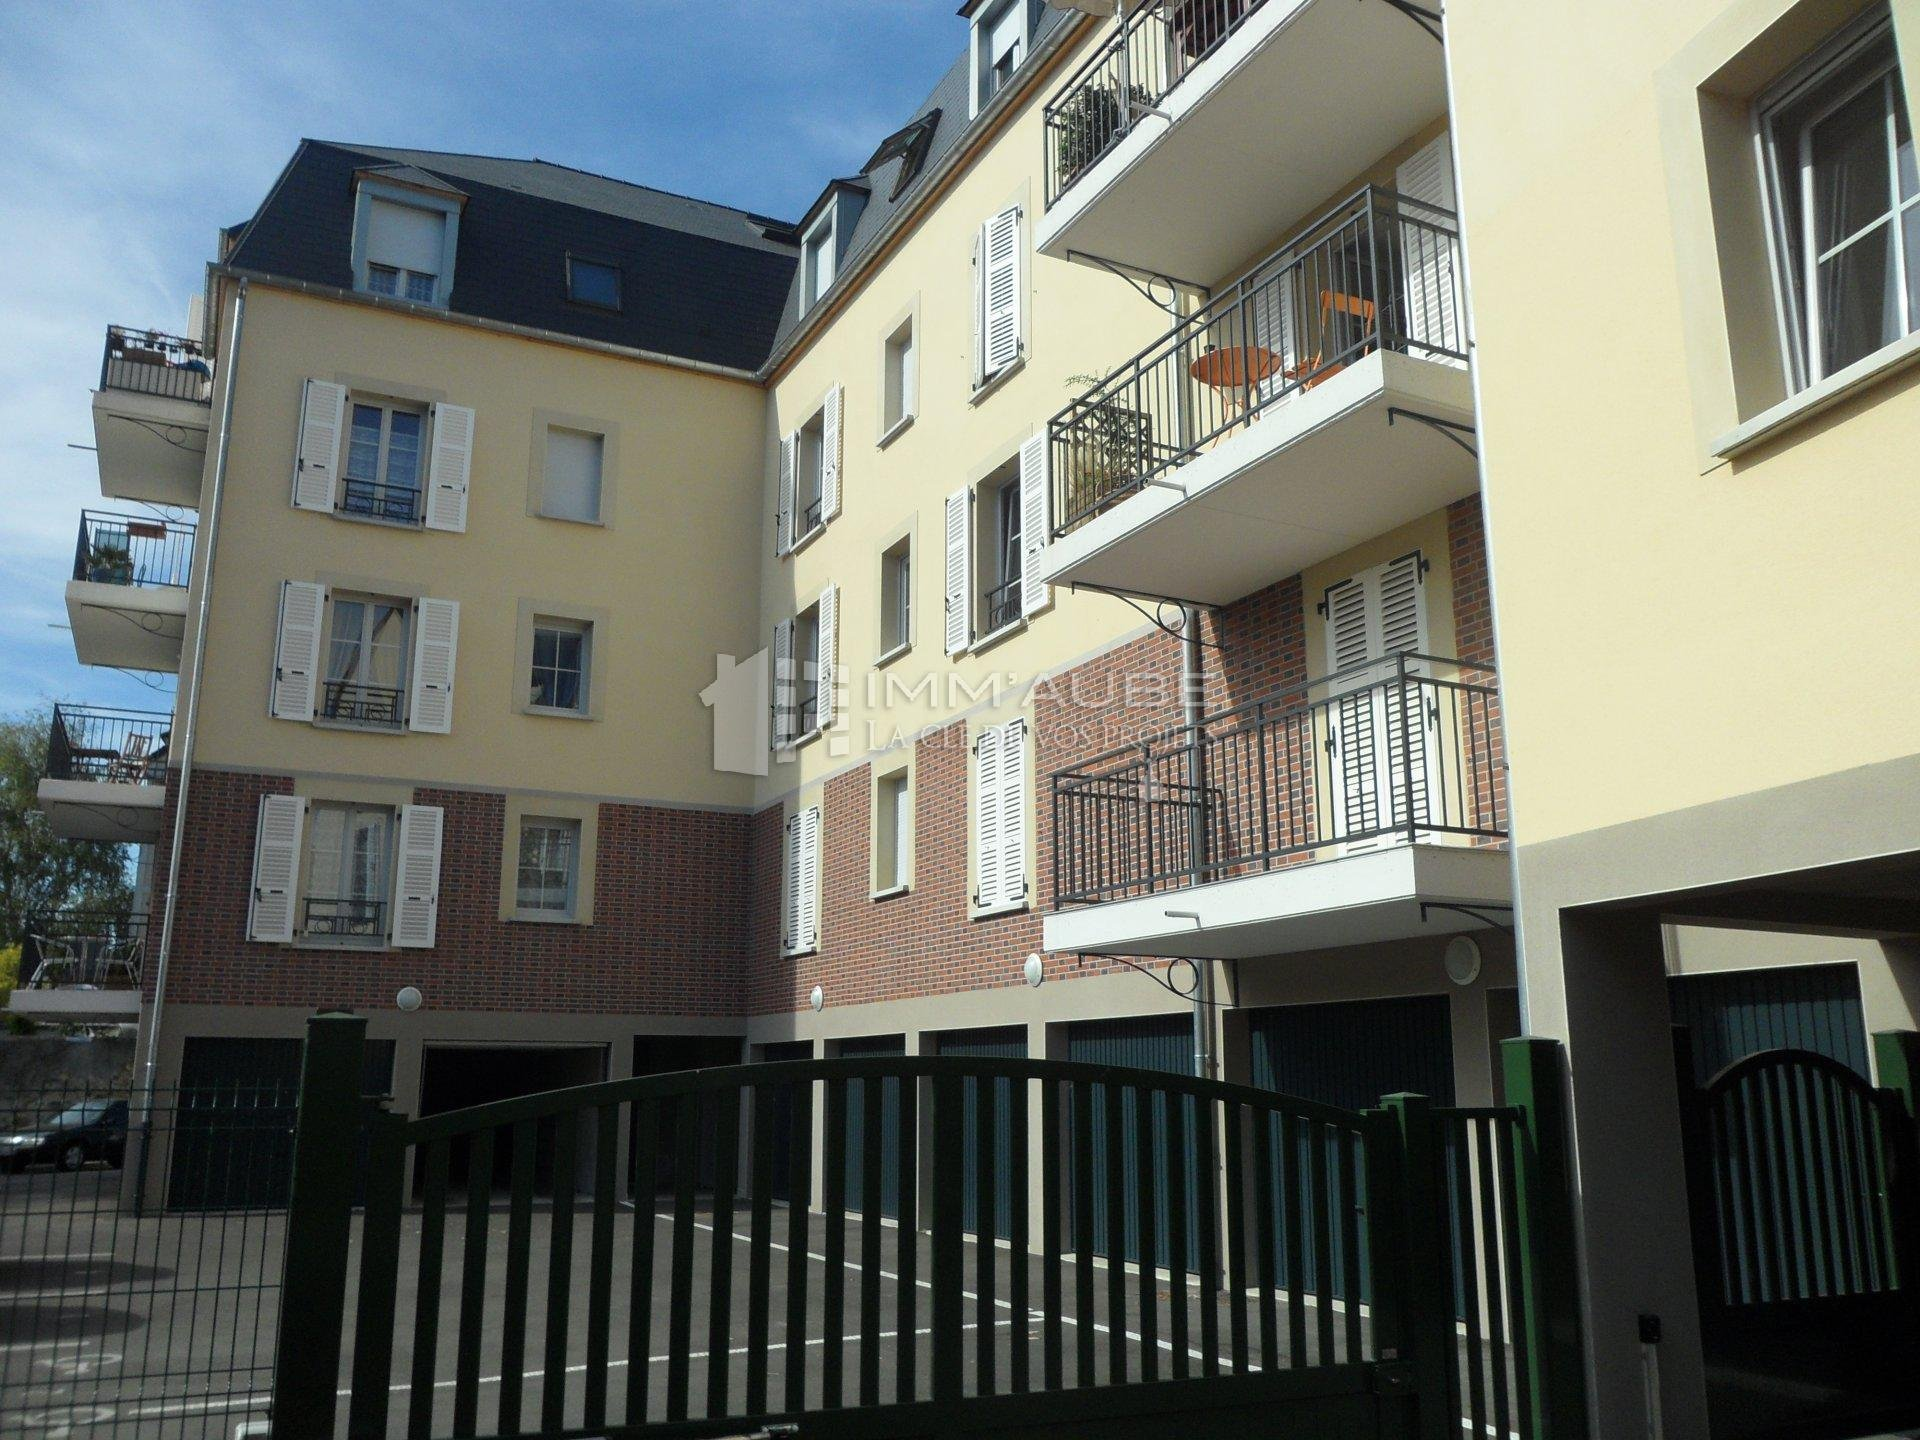 T2 RESIDENCE SECURISEE